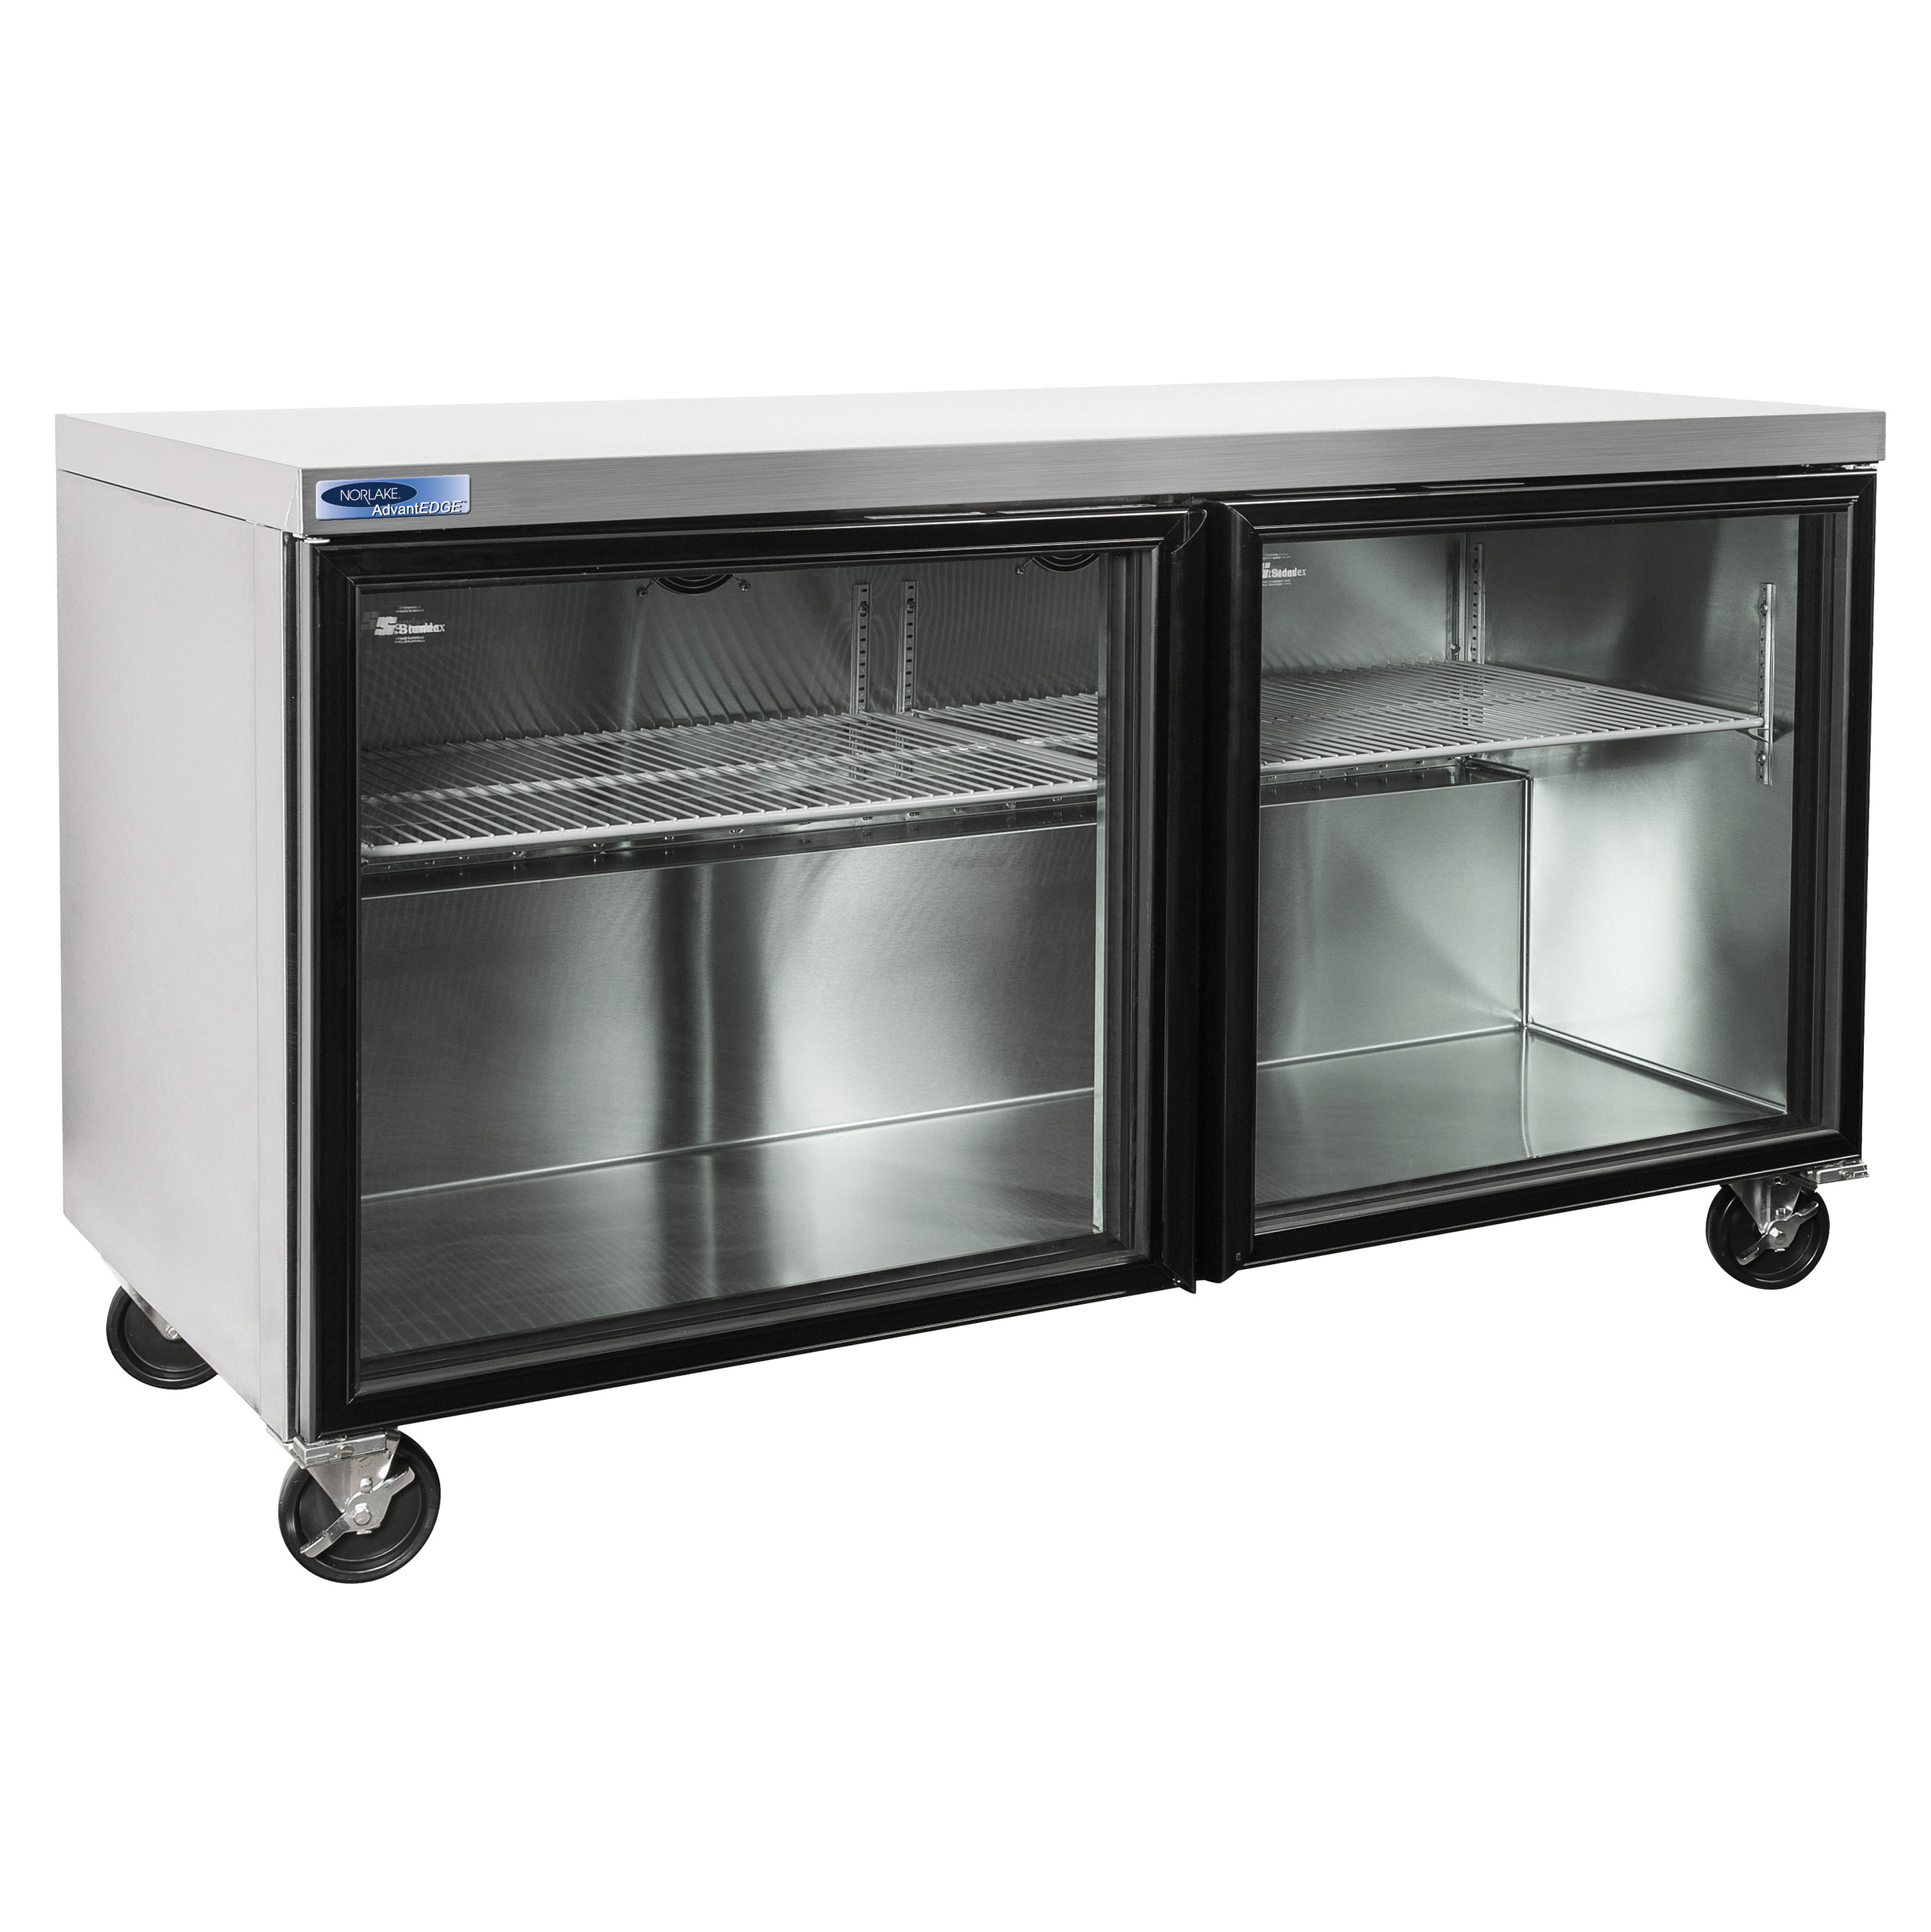 Nor-Lake NLURG60A-015 refrigerator, undercounter, reach-in